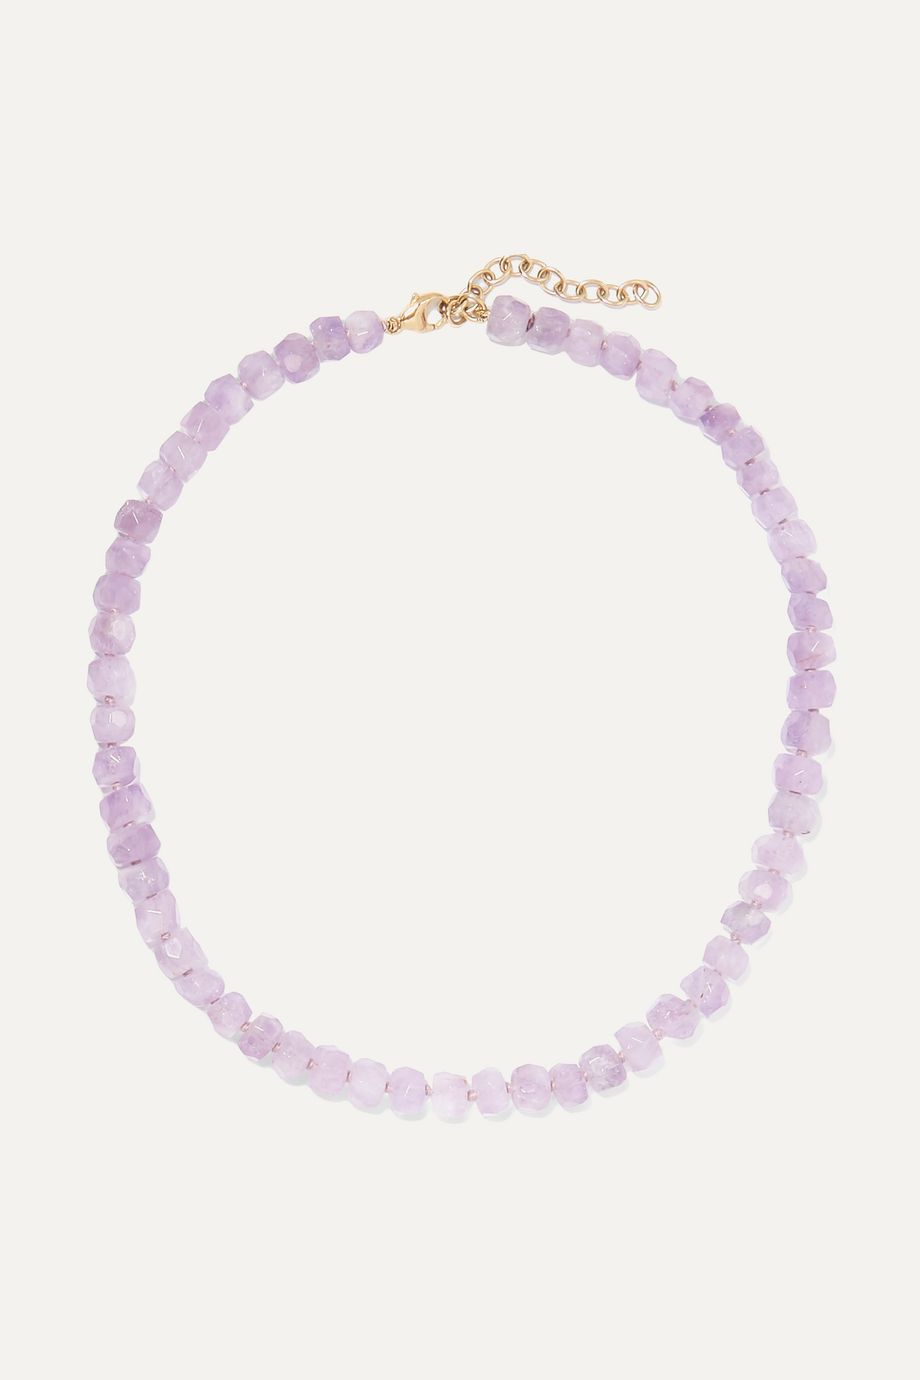 Harris Zhu 14-karat gold and amethyst necklace